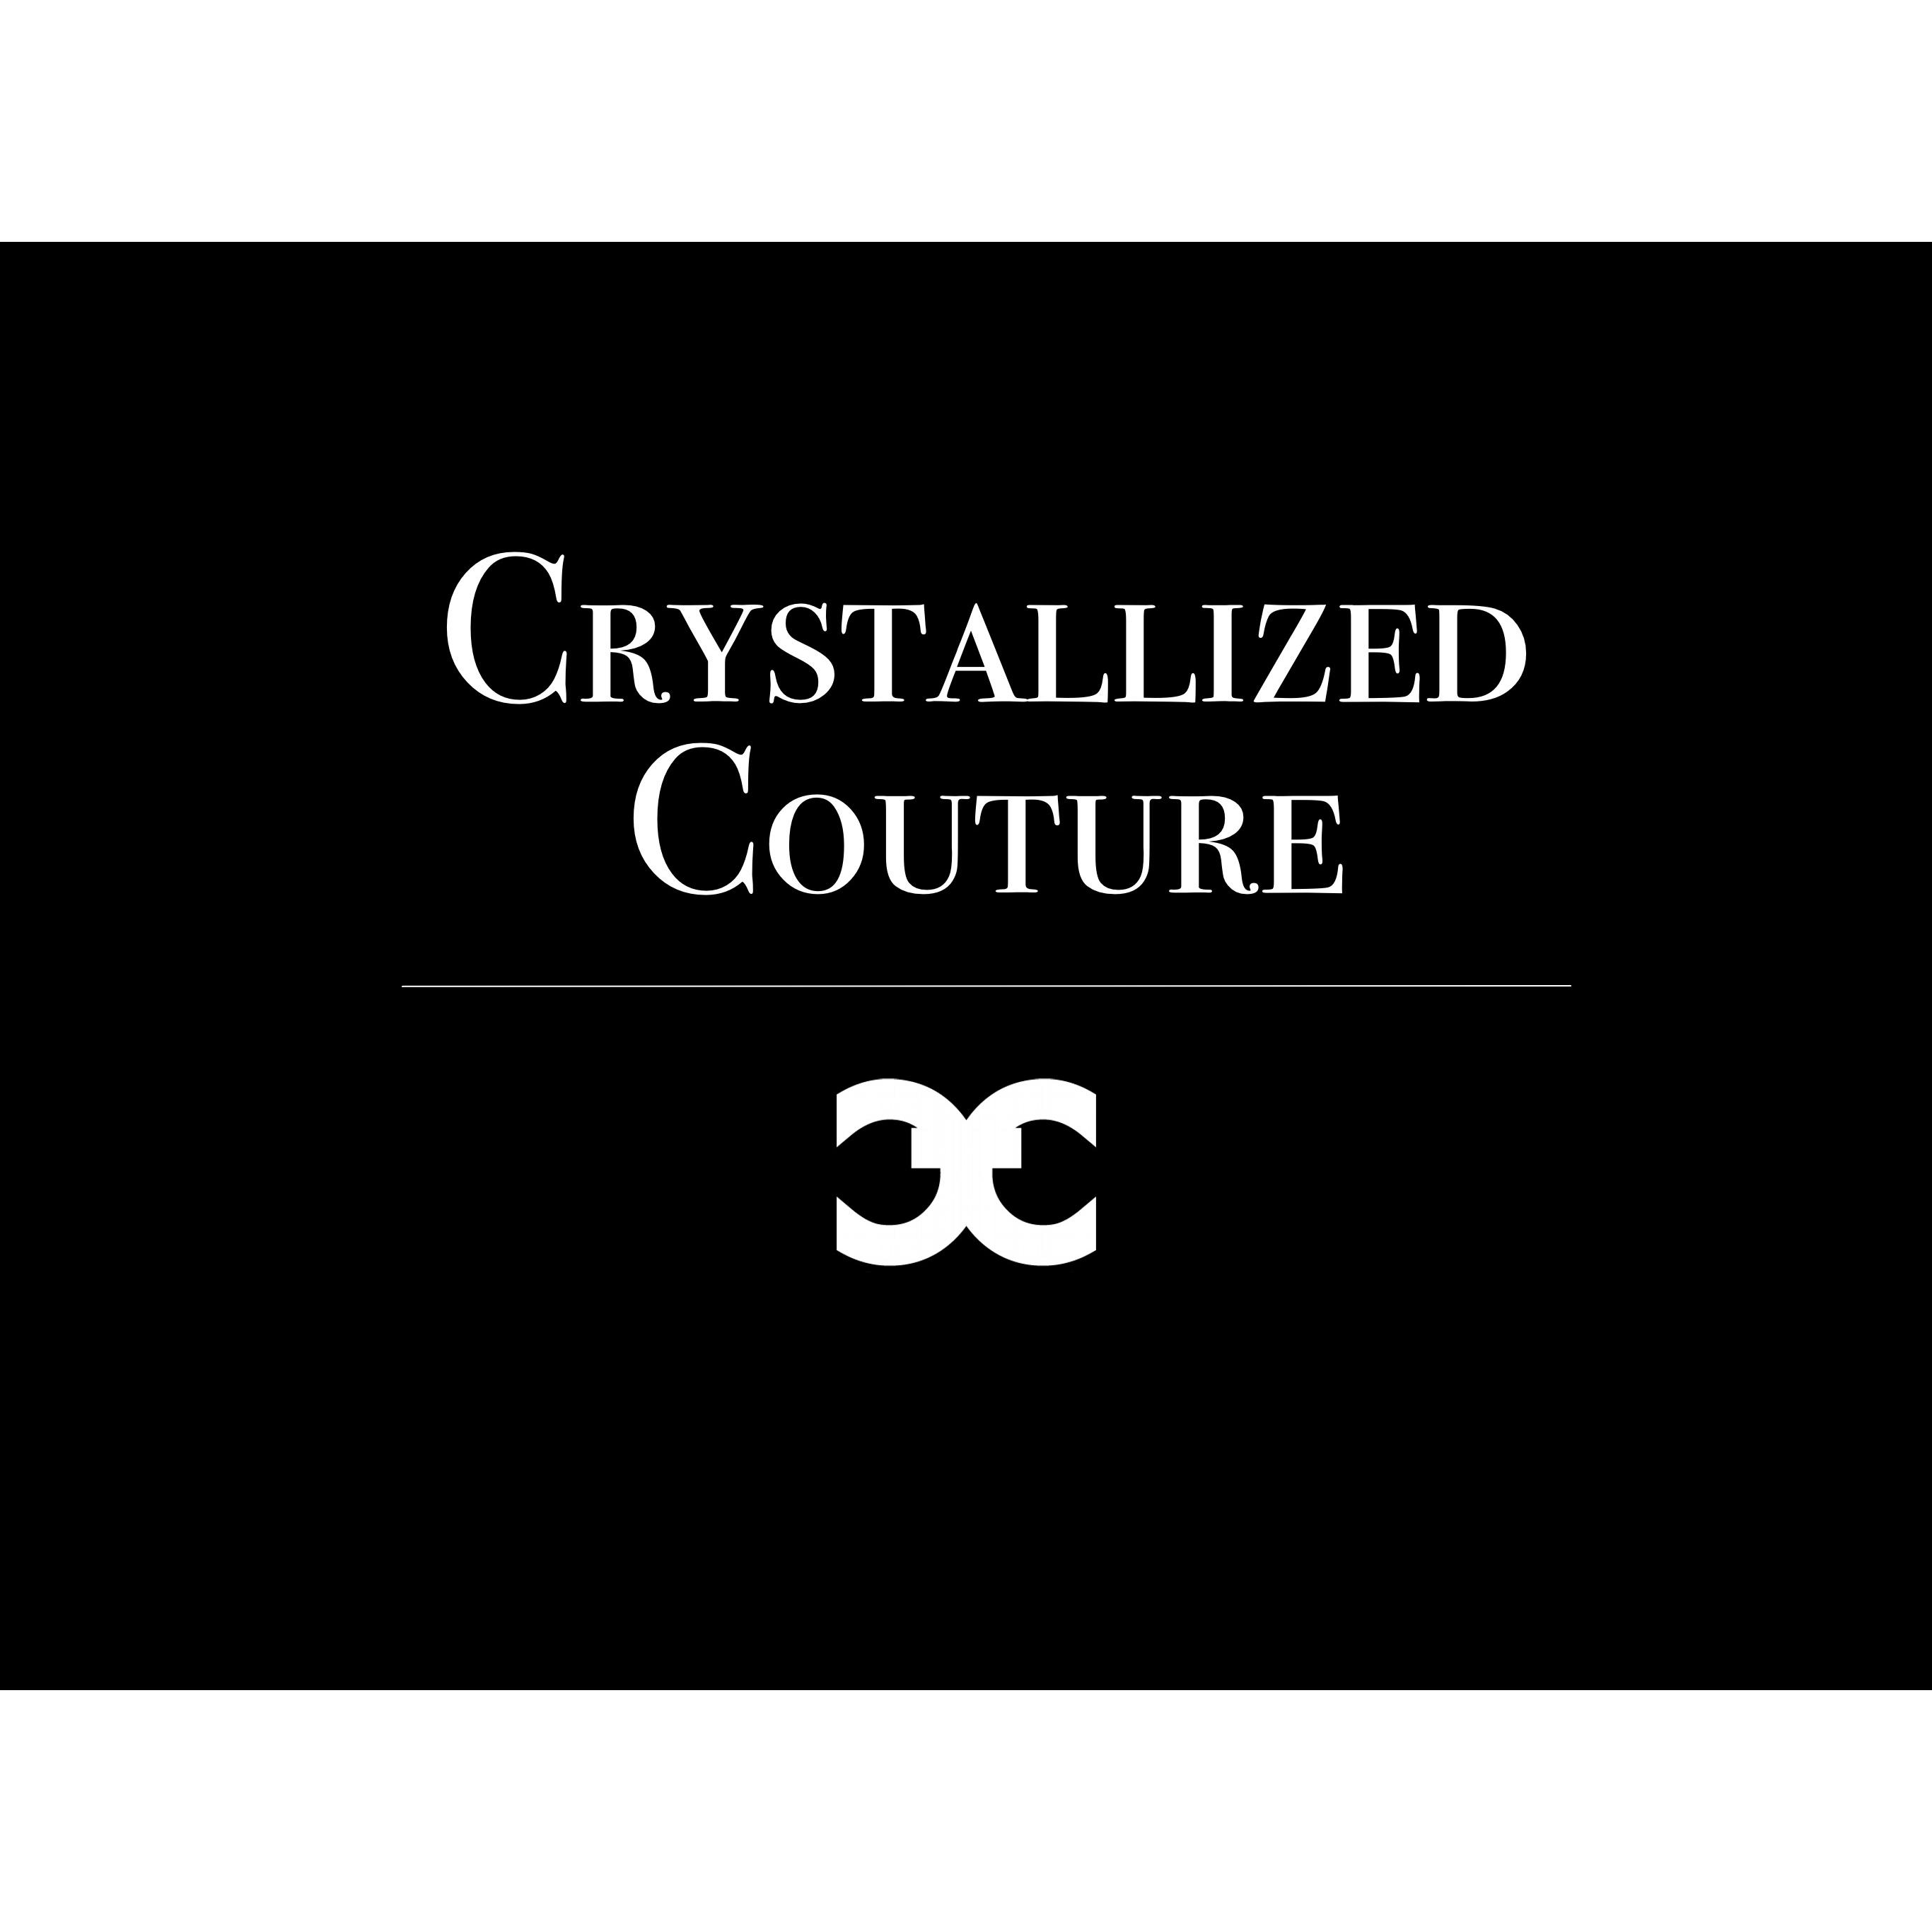 Crystallized Couture